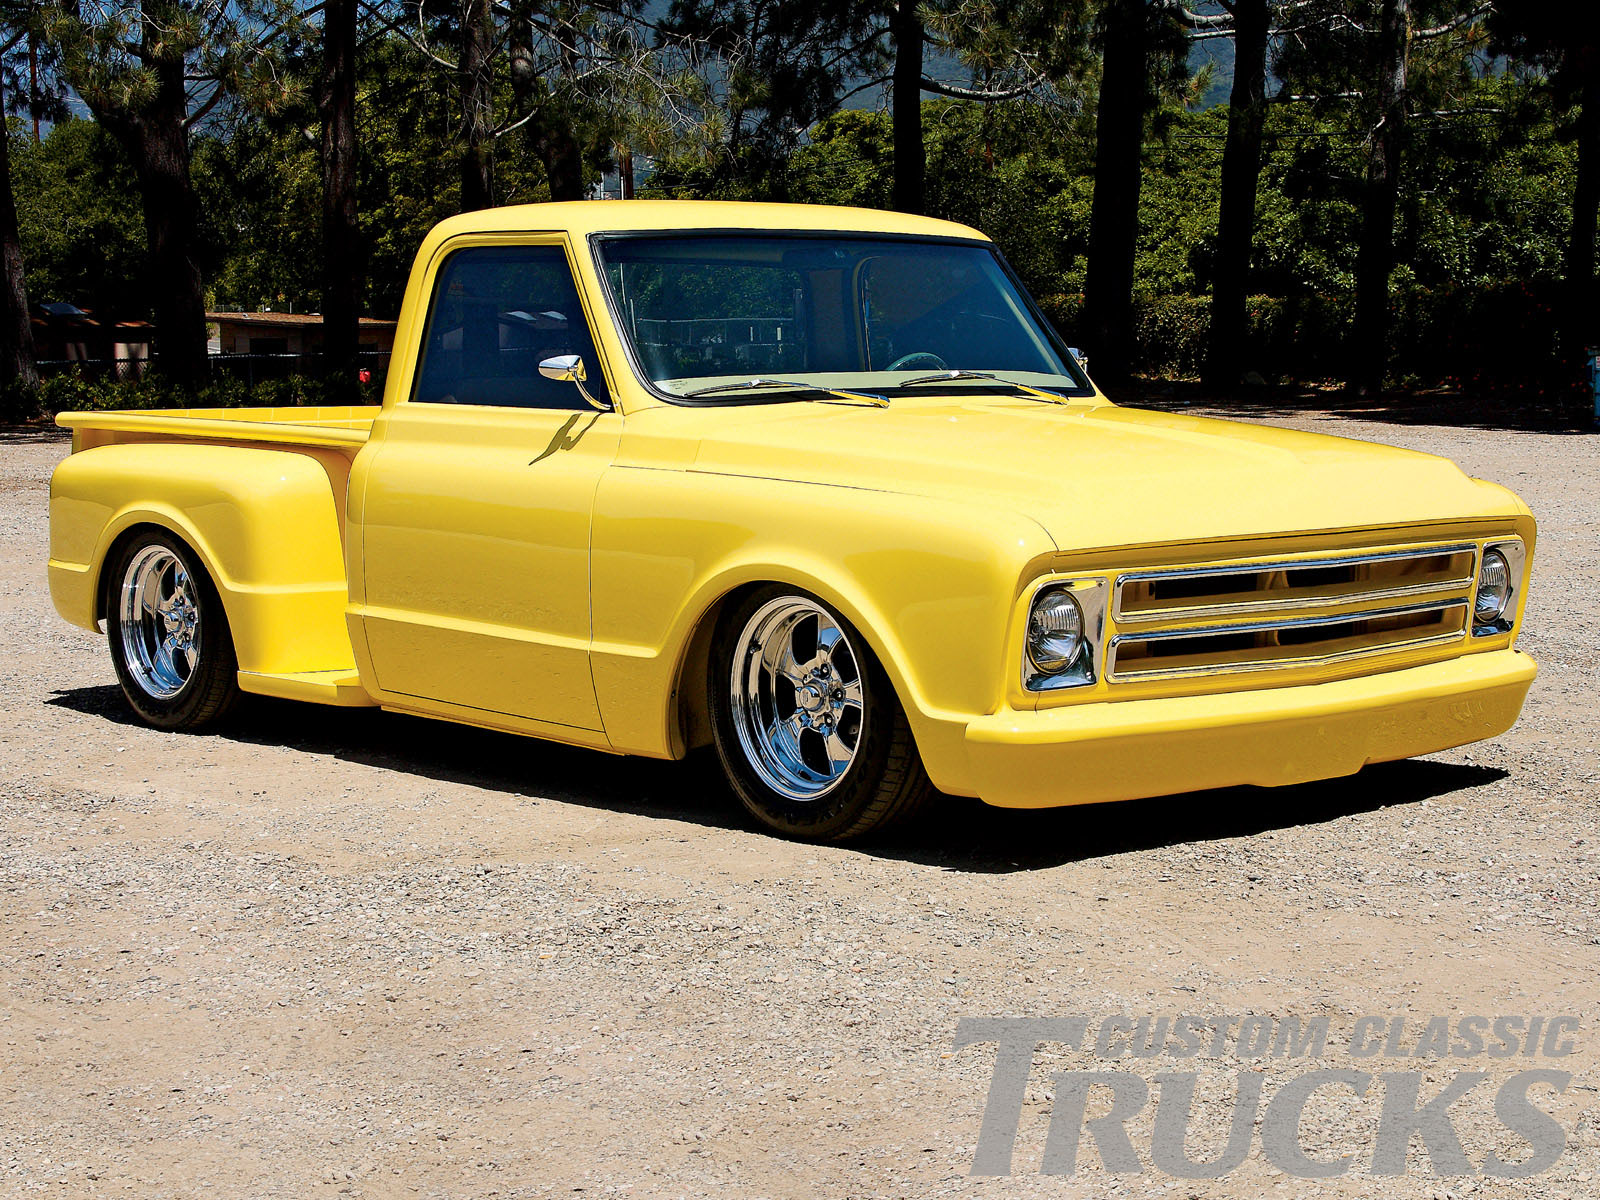 hight resolution of 0910cct 01 o 1971 chevy c10 pickup truck front bumper